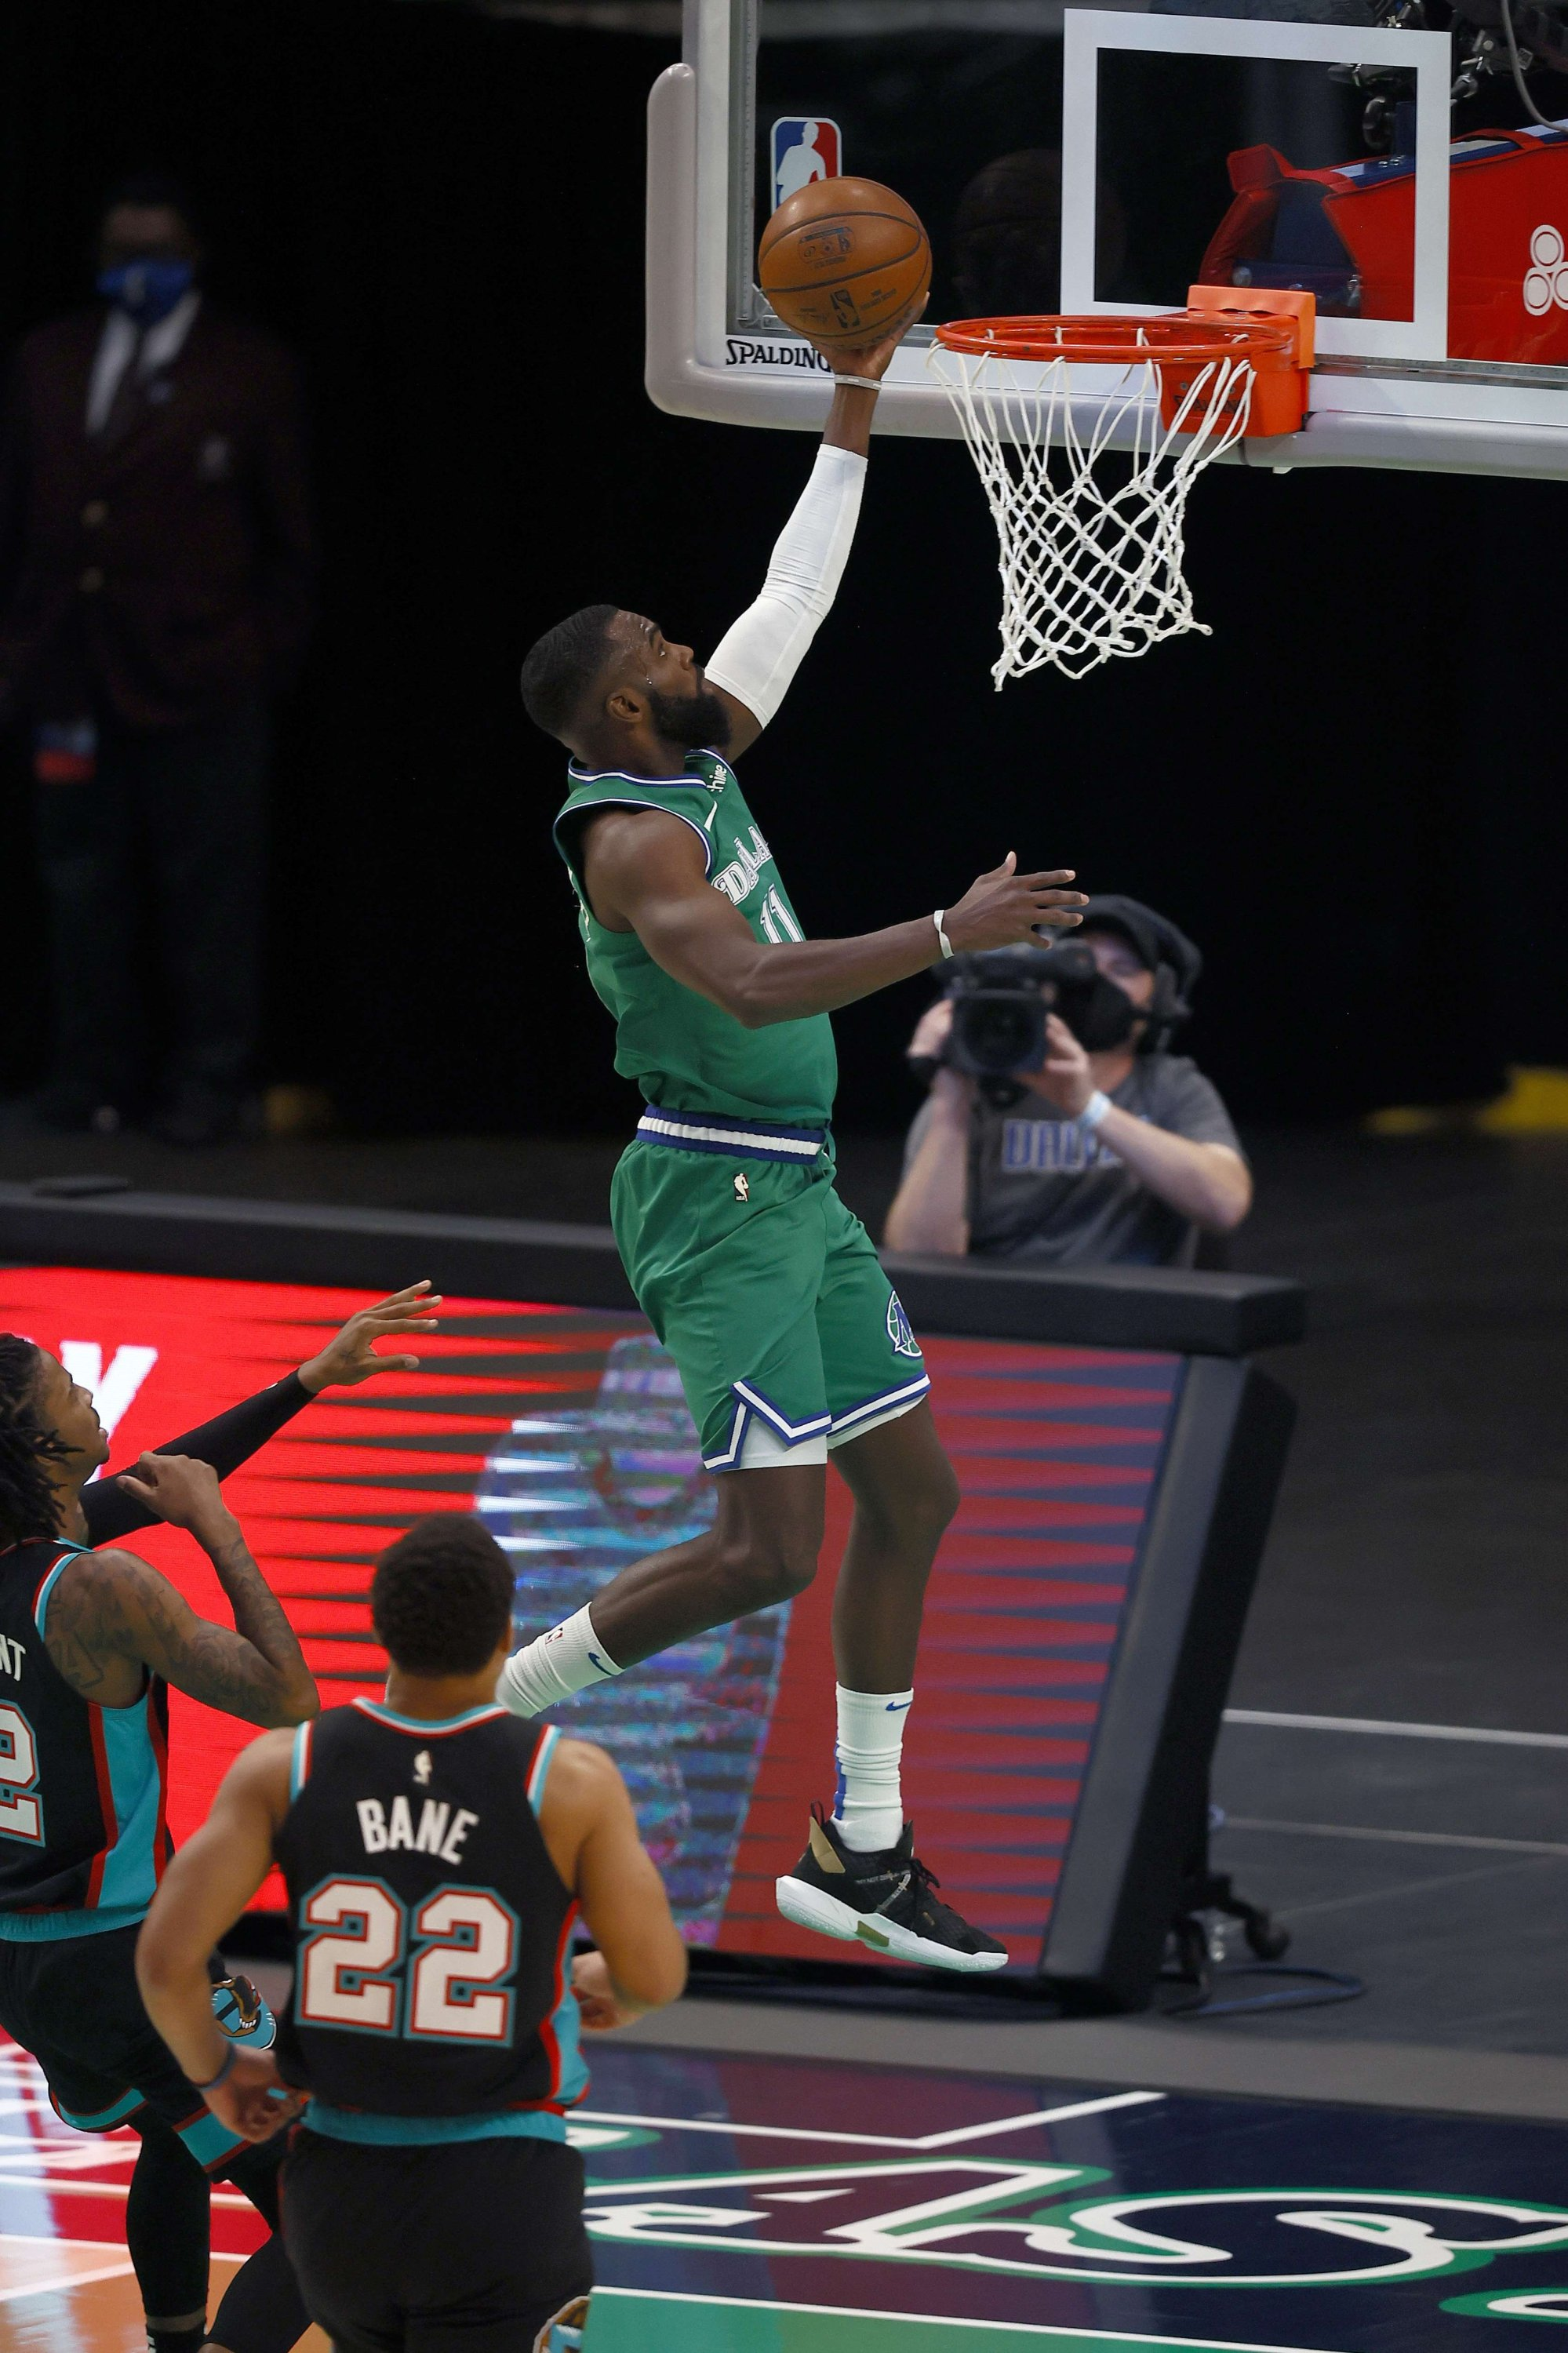 Dallas Mavericks' Tim Hardaway Jr. drives to the basket against Memphis Grizzlies in an NBA match at American Airlines Center, Dallas, Texas,Feb. 22, 2021. (AFP Photo)